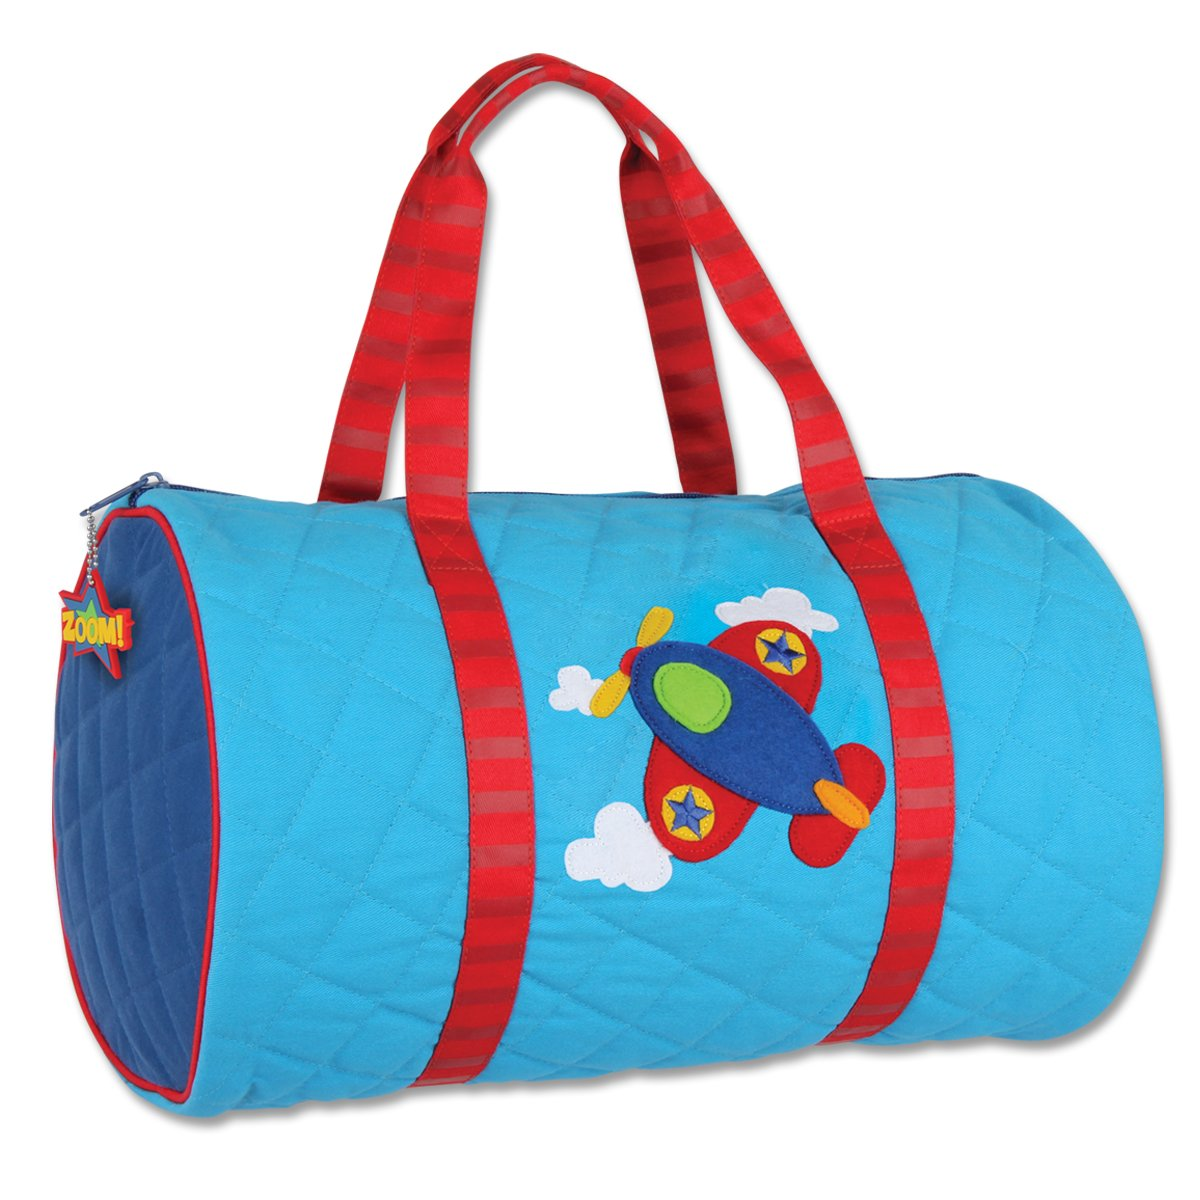 Stephen Joseph Quilted Duffle, Airplane